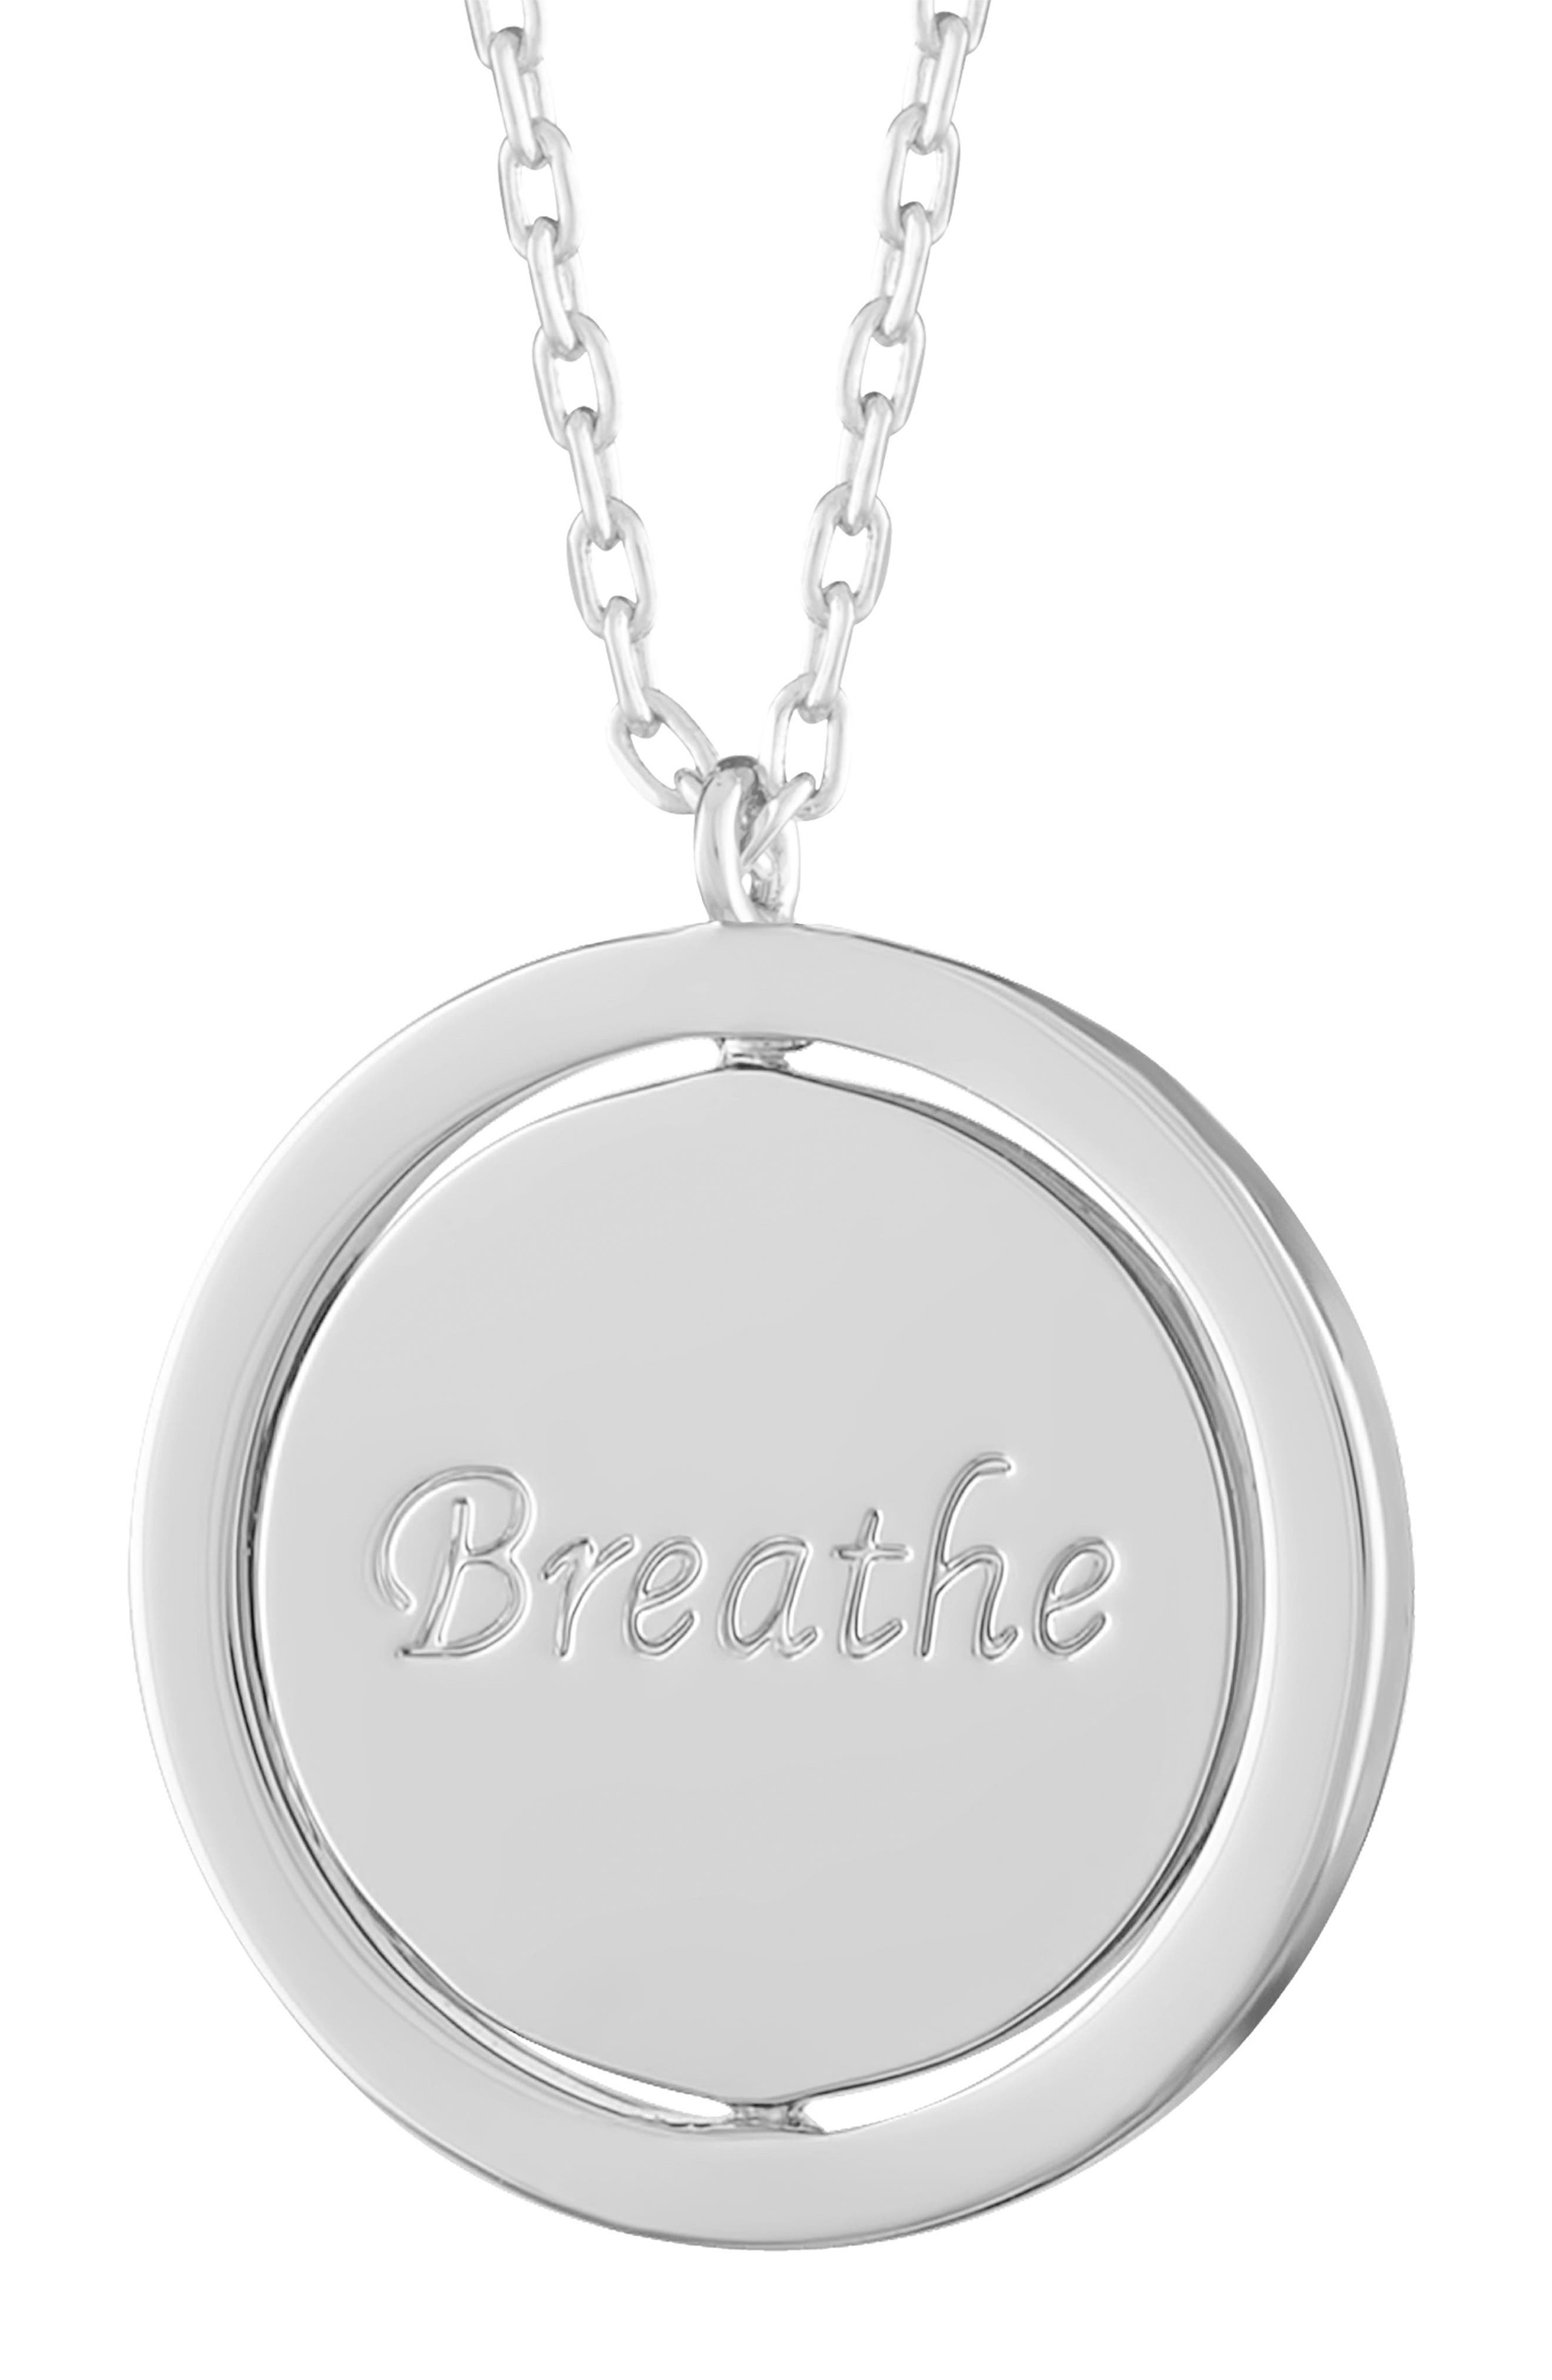 Breathe Love Letters Flip Pendant Necklace,                             Alternate thumbnail 5, color,                             Breathe/ Silver